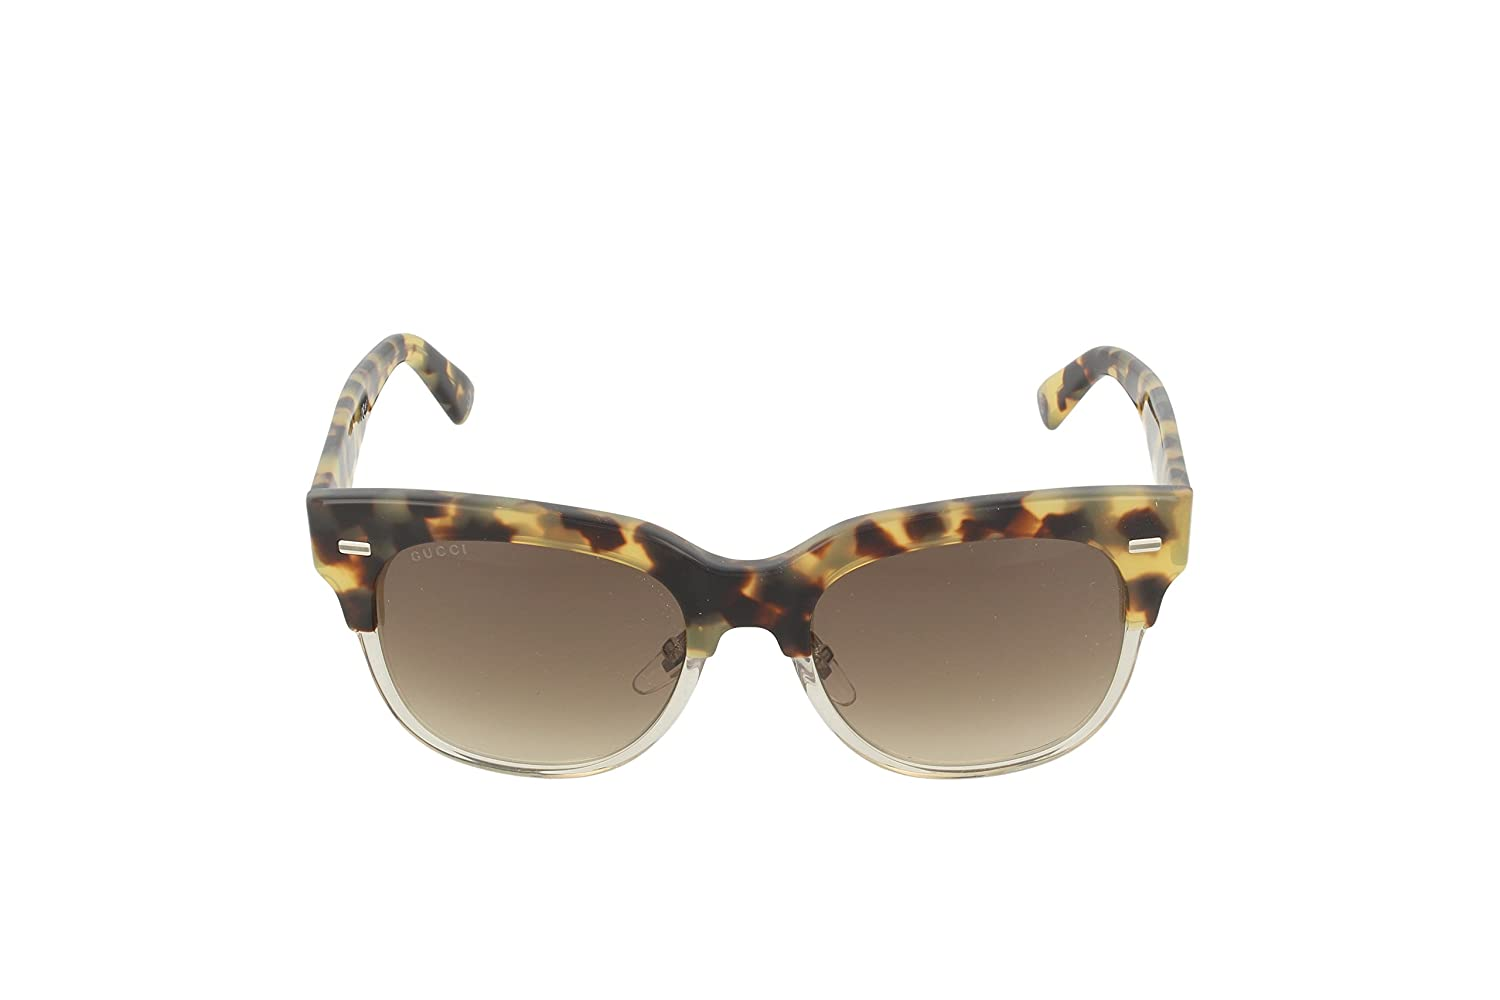 93af994a21765 Amazon.com  Gucci 3744 Spotted Top Sunglasses  Shoes